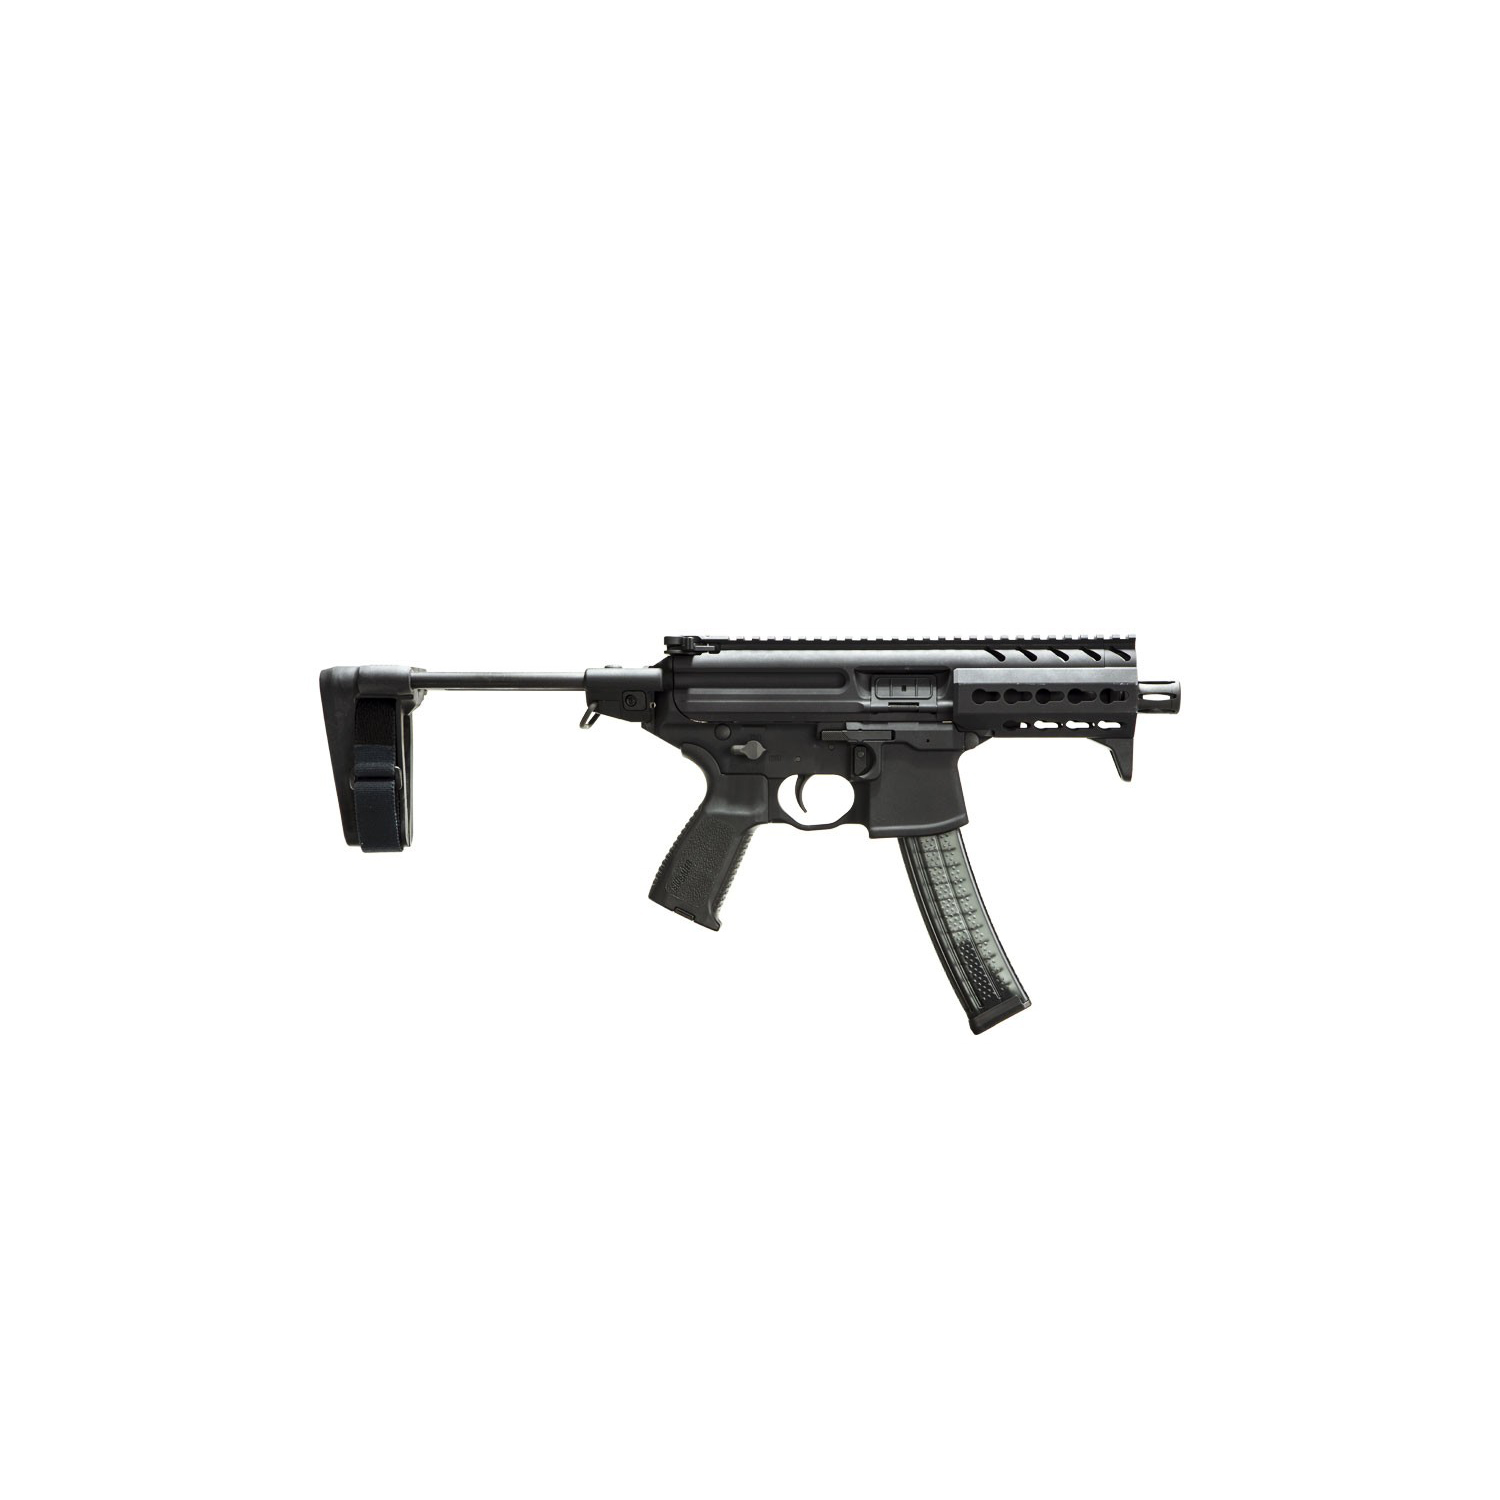 Sig Sauer MPX K w/ PSB, 4.5in Barrel, 9MM, Semi Auto Handgun